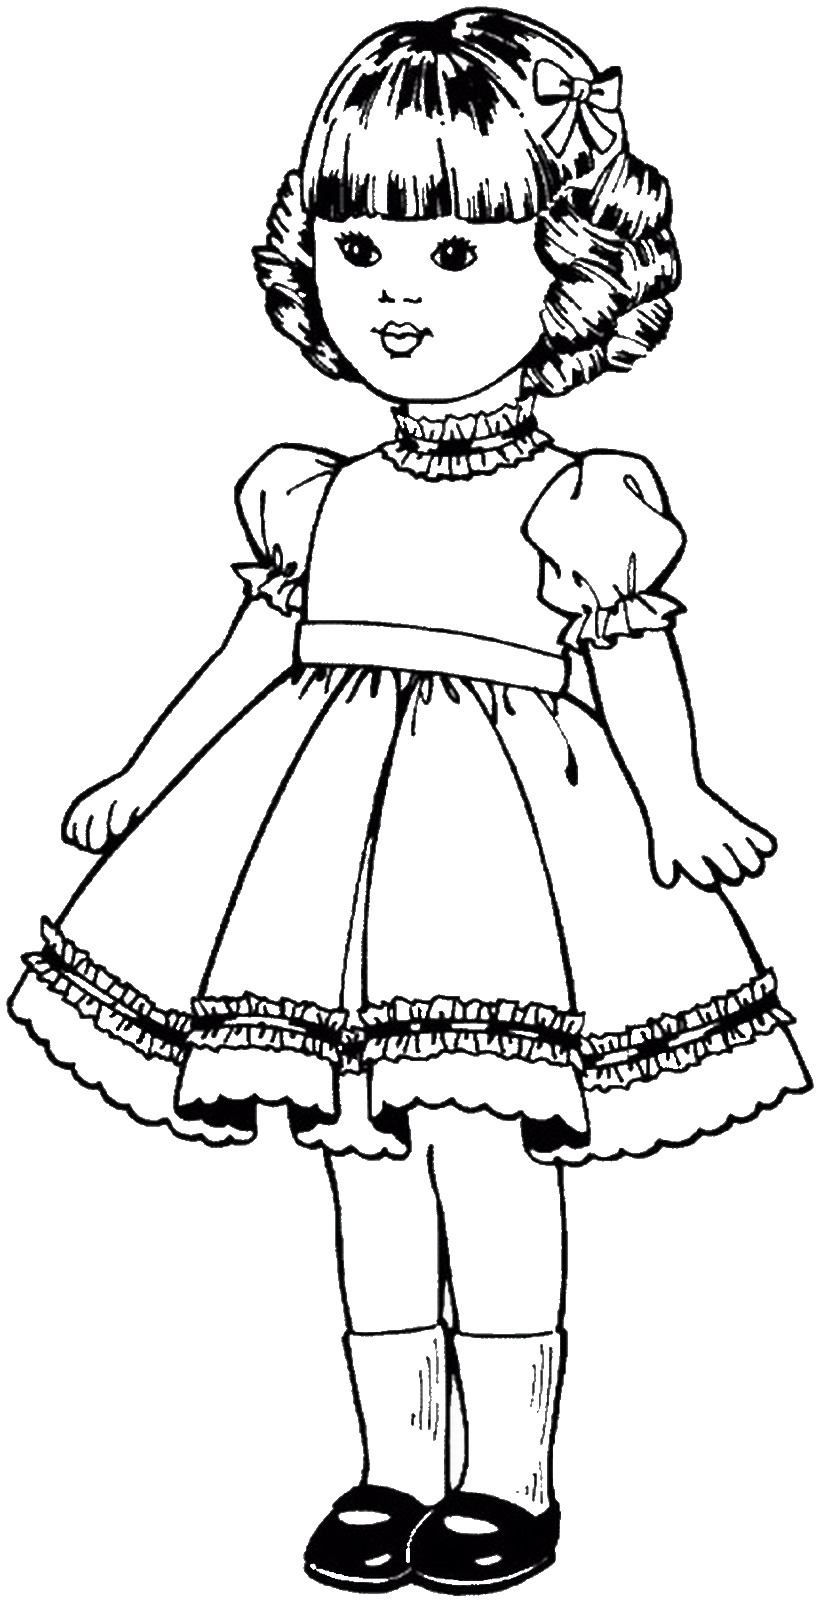 doll coloring sheets baby doll coloring pages coloring pages to download and doll sheets coloring